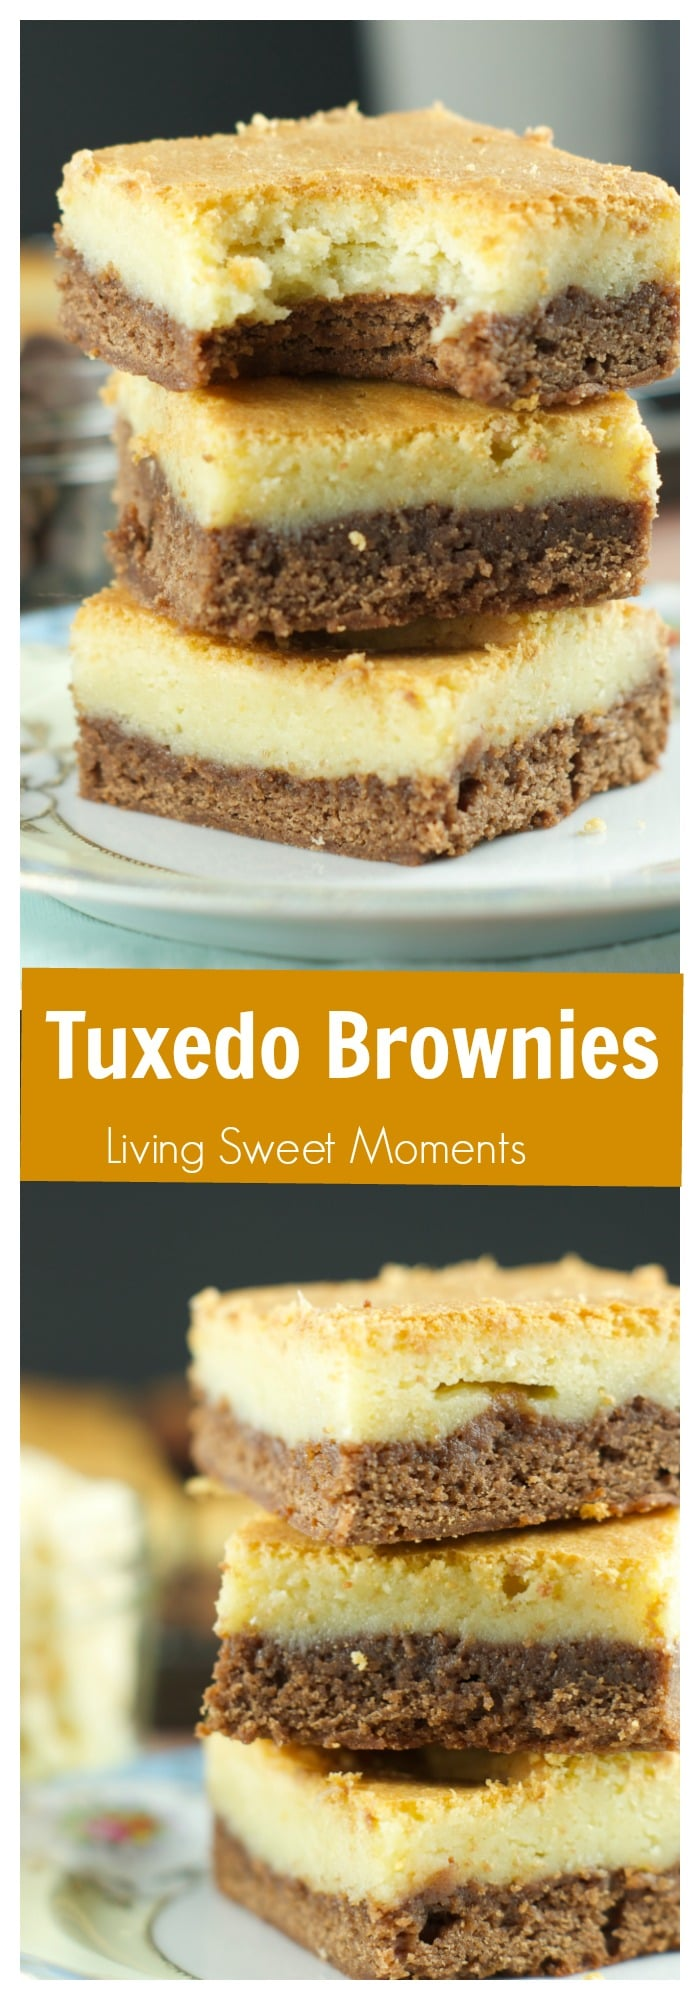 Fudgy rich chocolate brownies are topped with a layer of soft white chocolate blondies. This yummy 2 layer brownie is a chocoholic's dream.